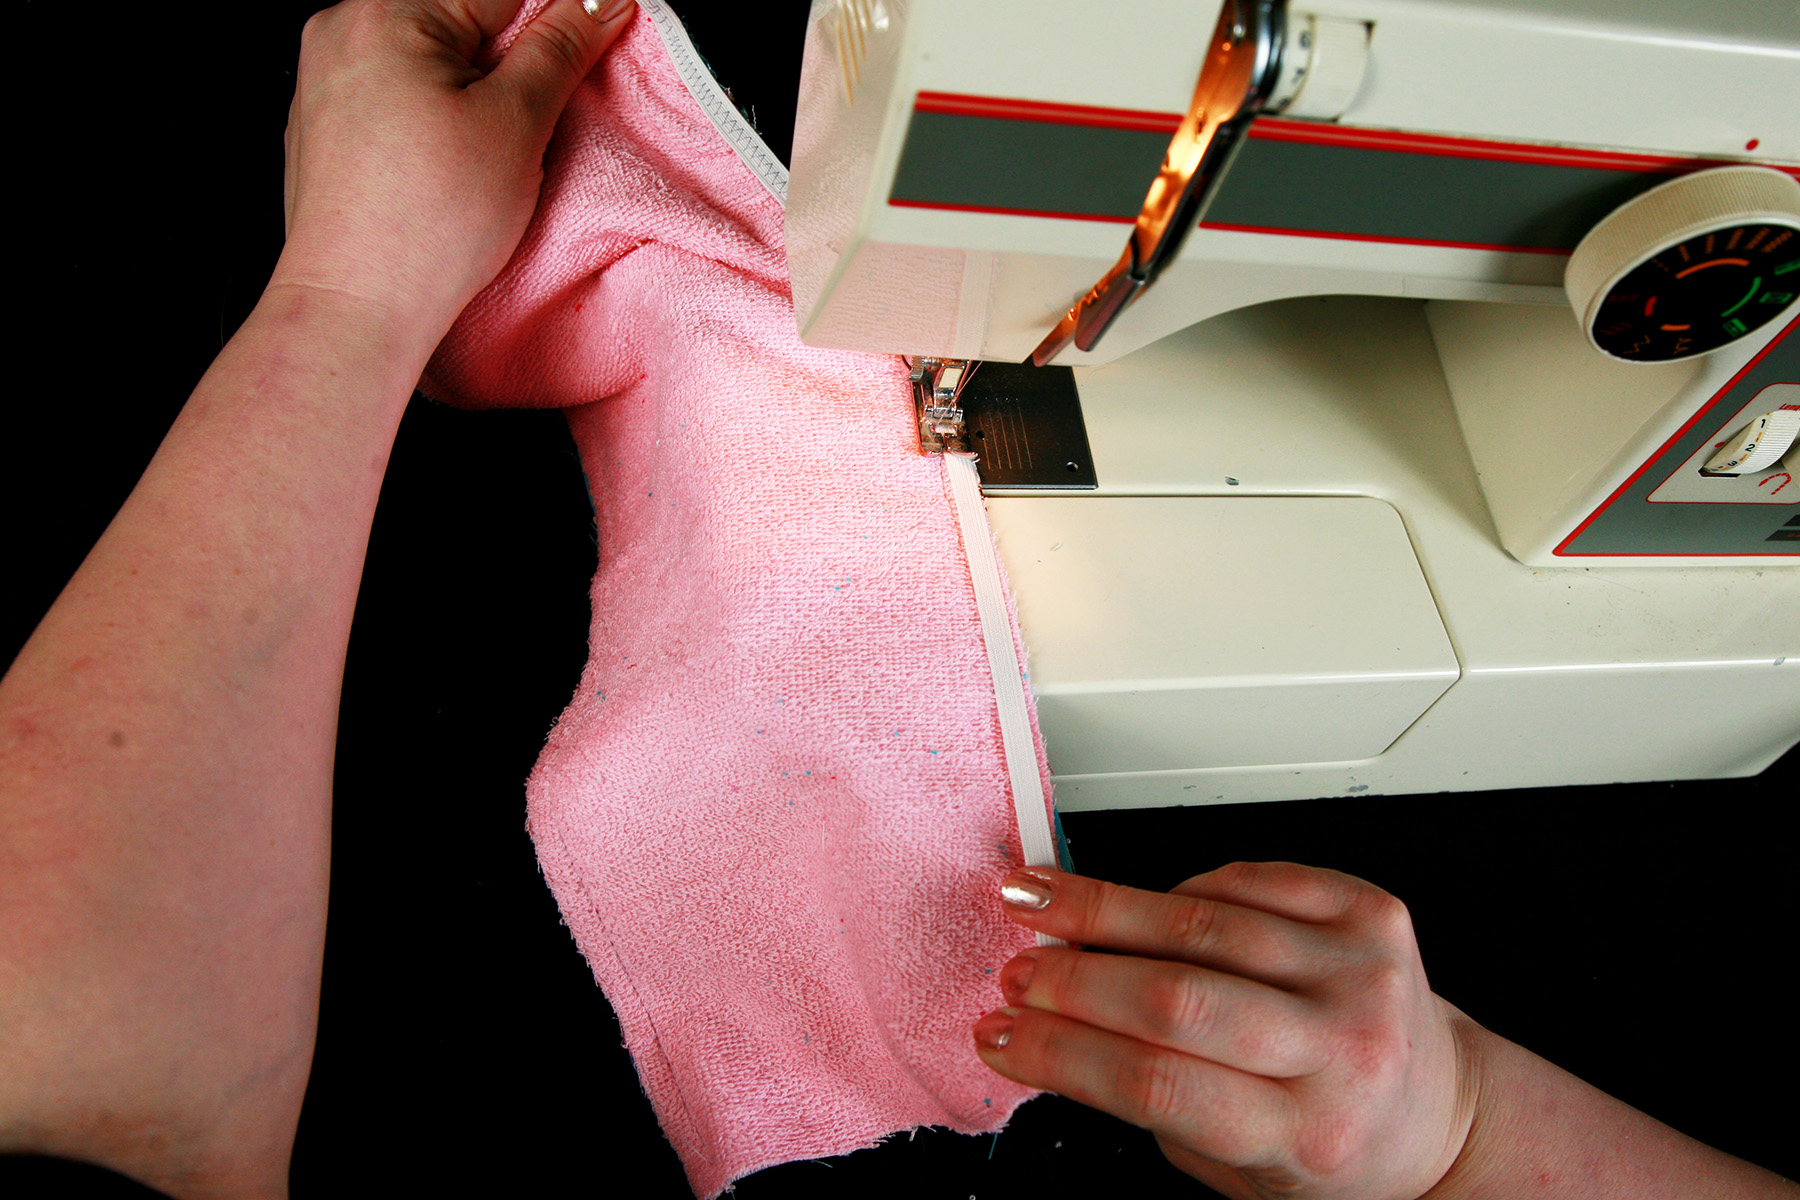 A pair of hands uses a sewing machine to sew a strip of elastic to a piece of pink terrycloth.